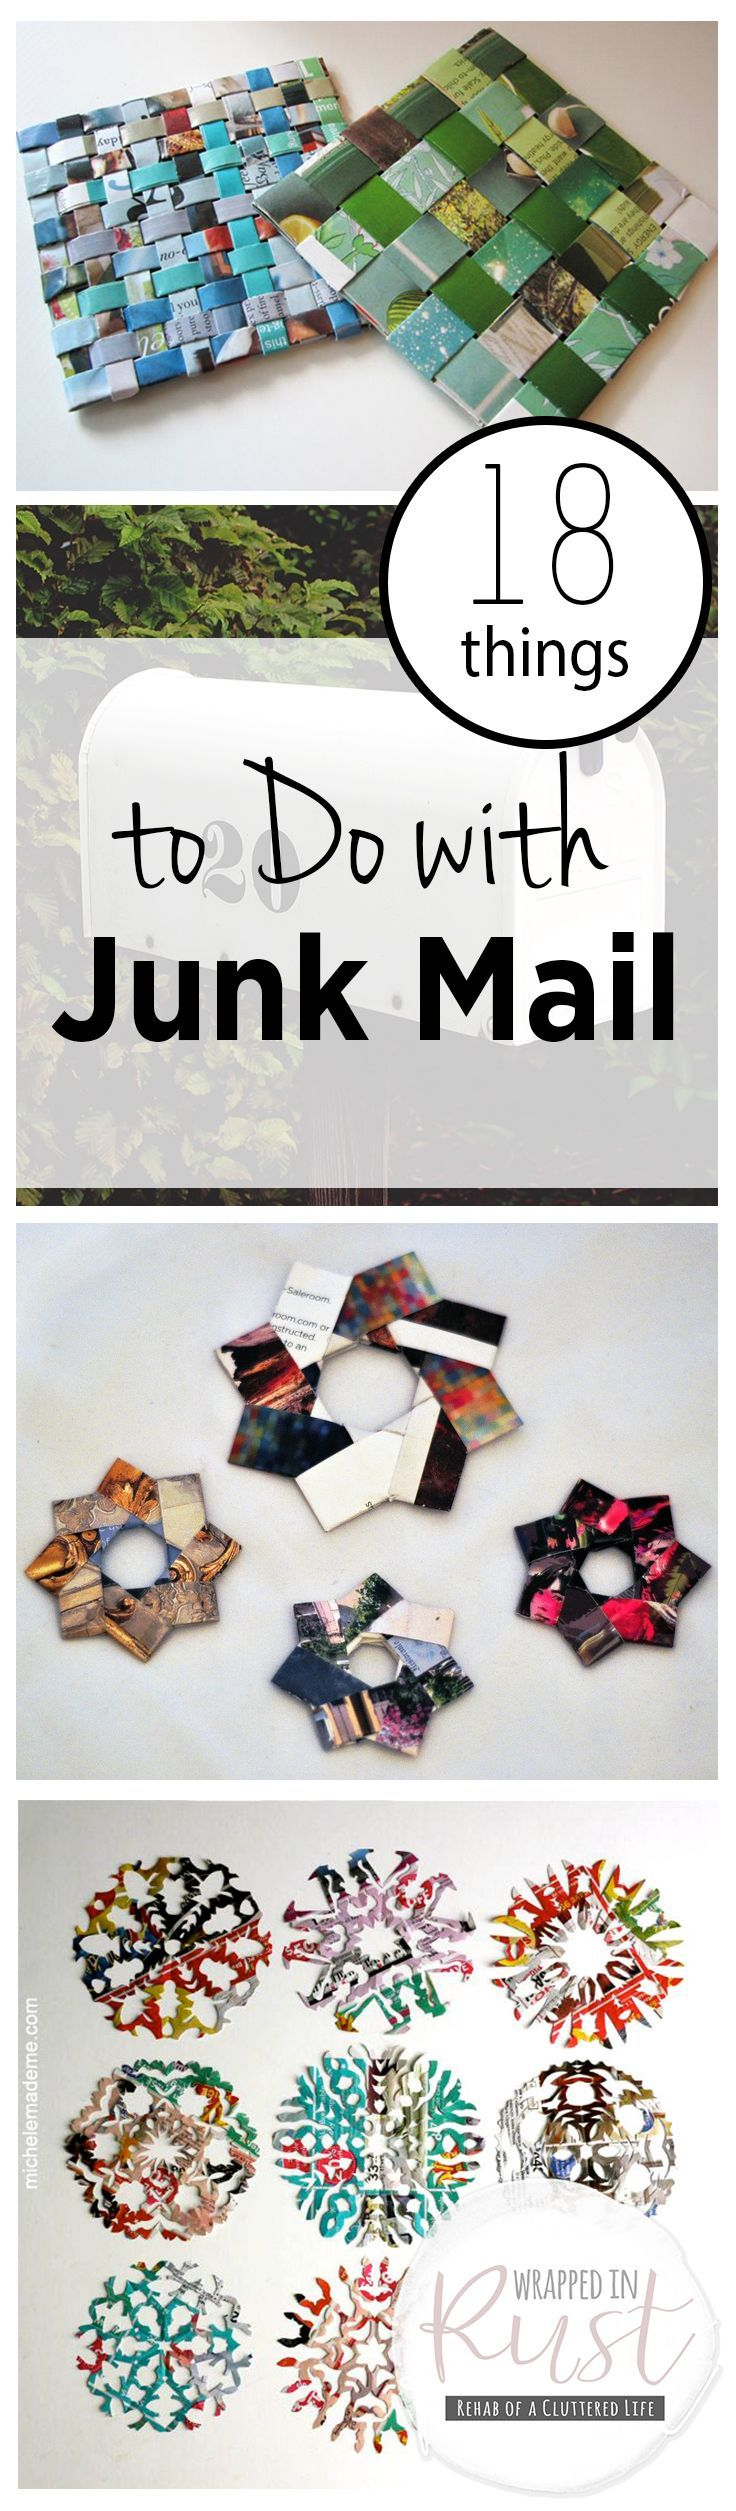 18 Things to Do with Junk Mail